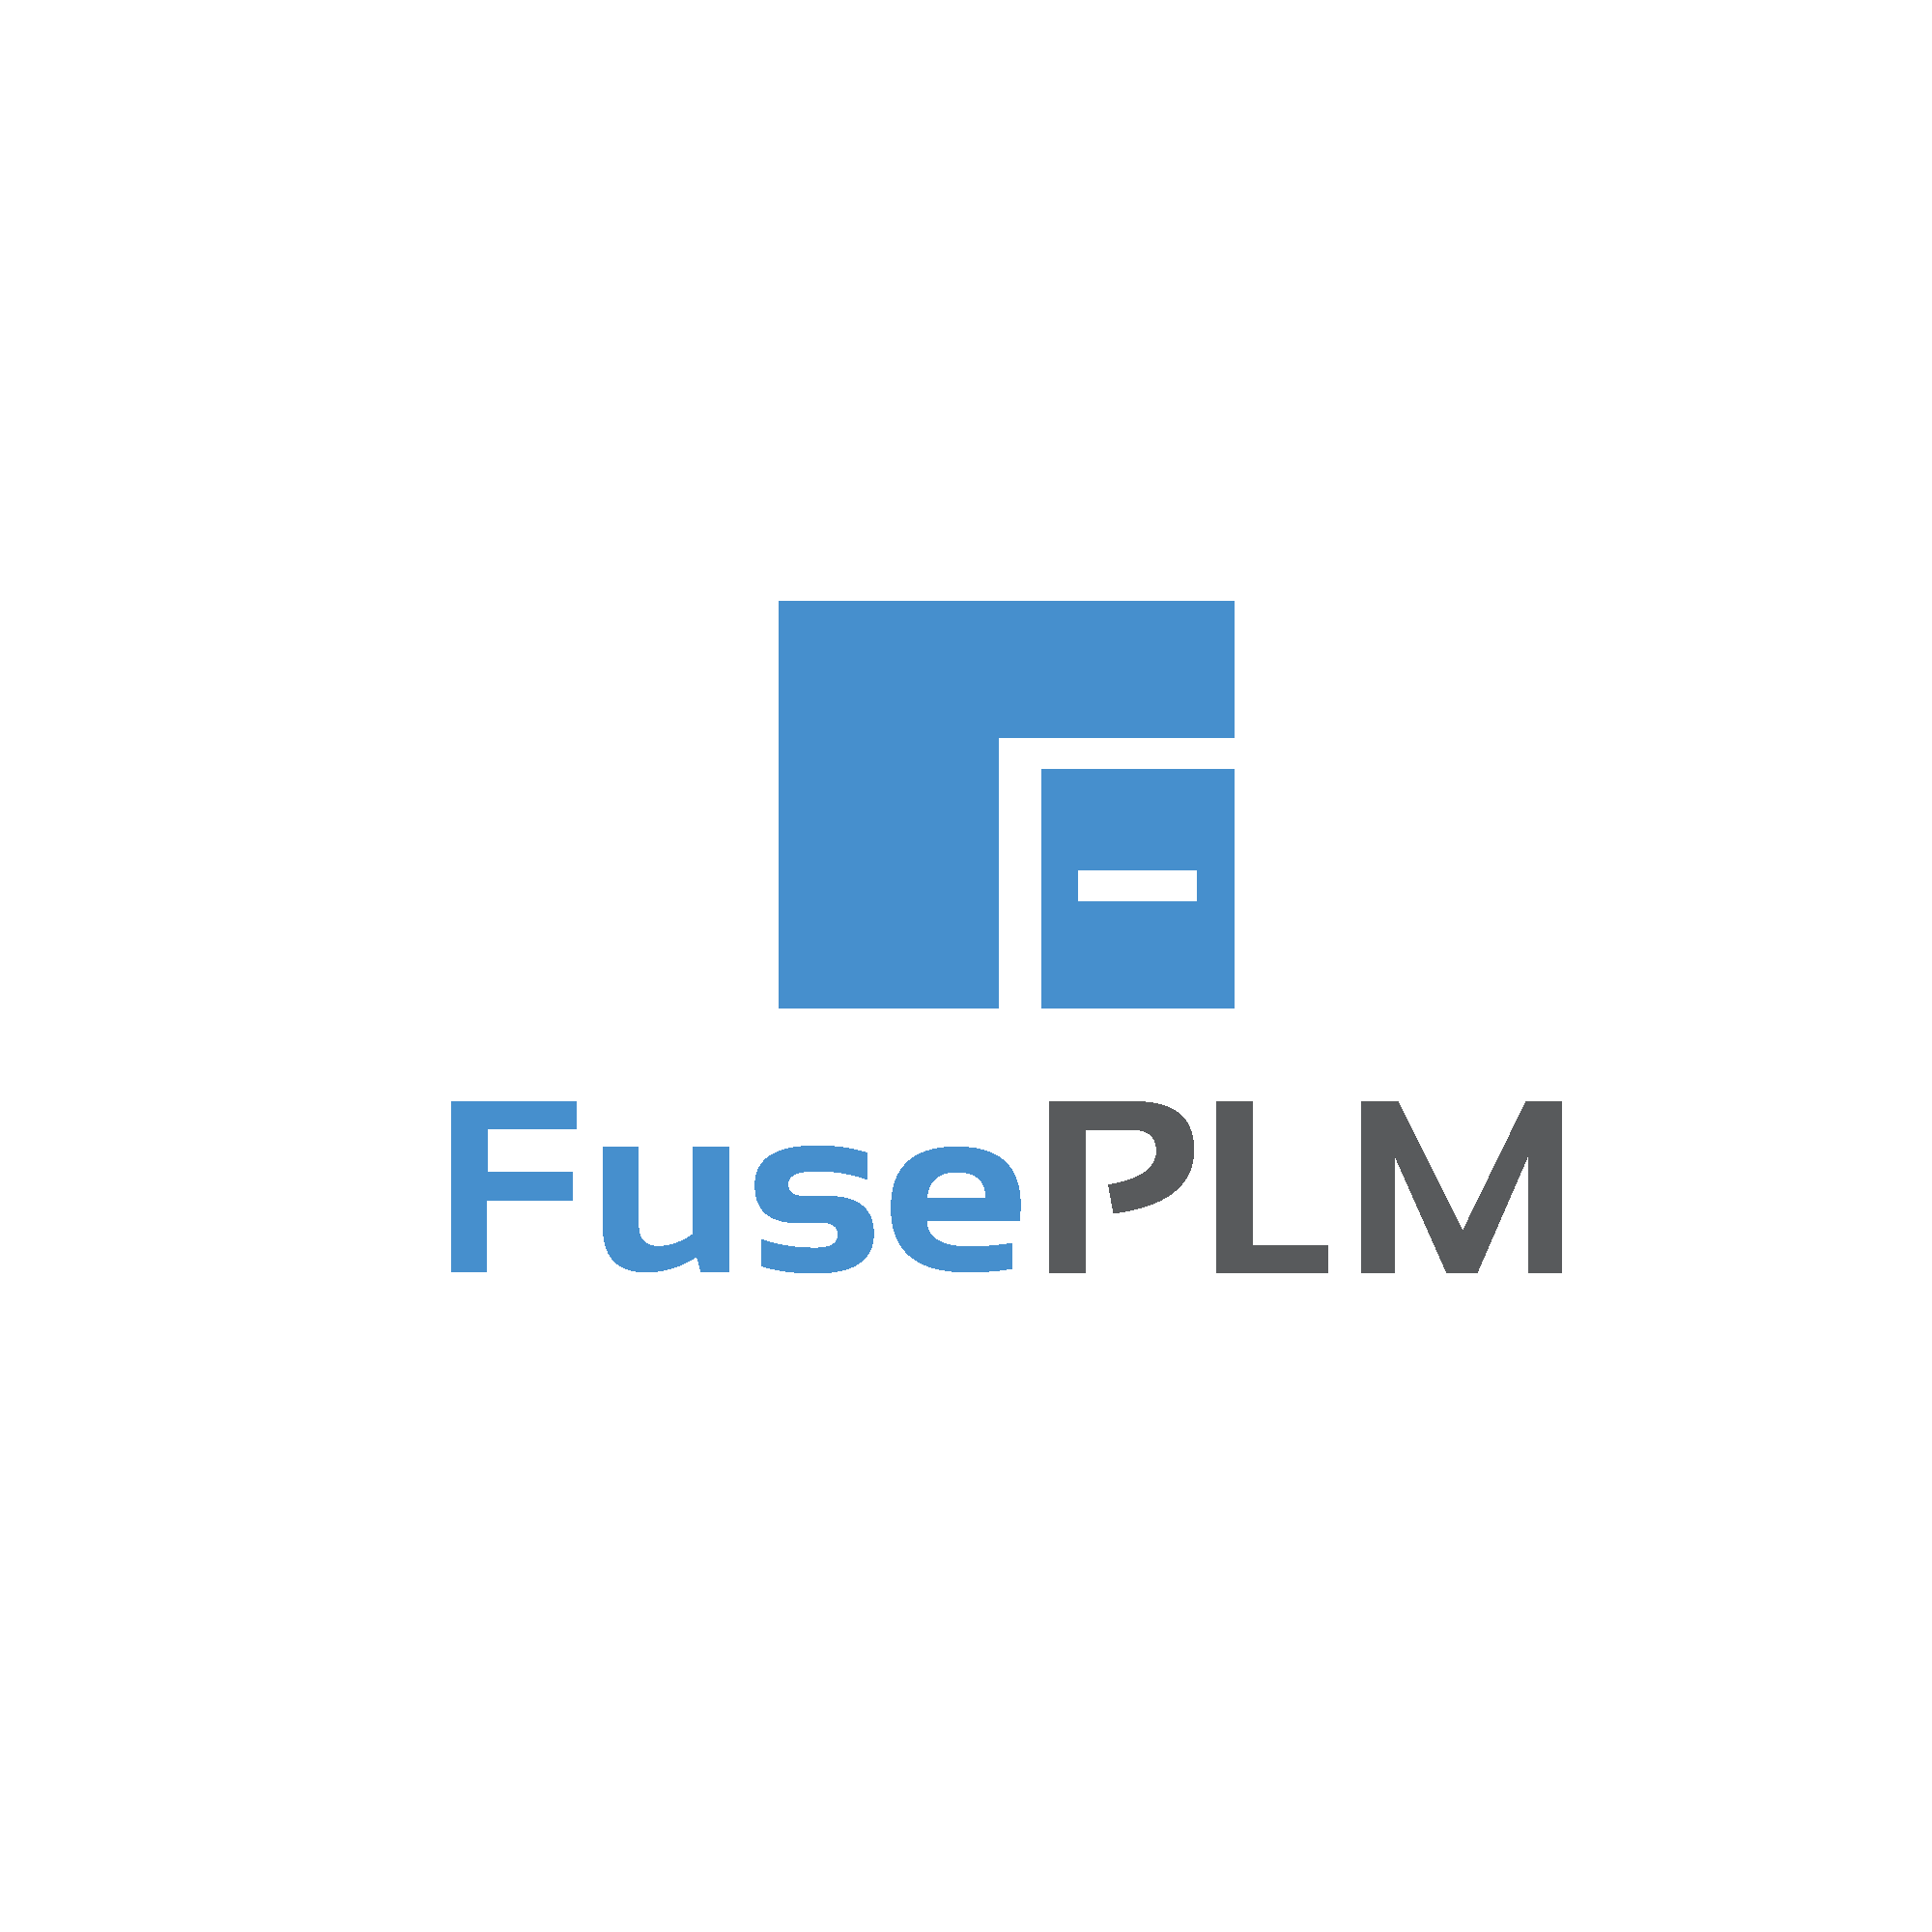 FusePLM - Product Lifecycle Management (PLM) Software : SaaSworthy.com